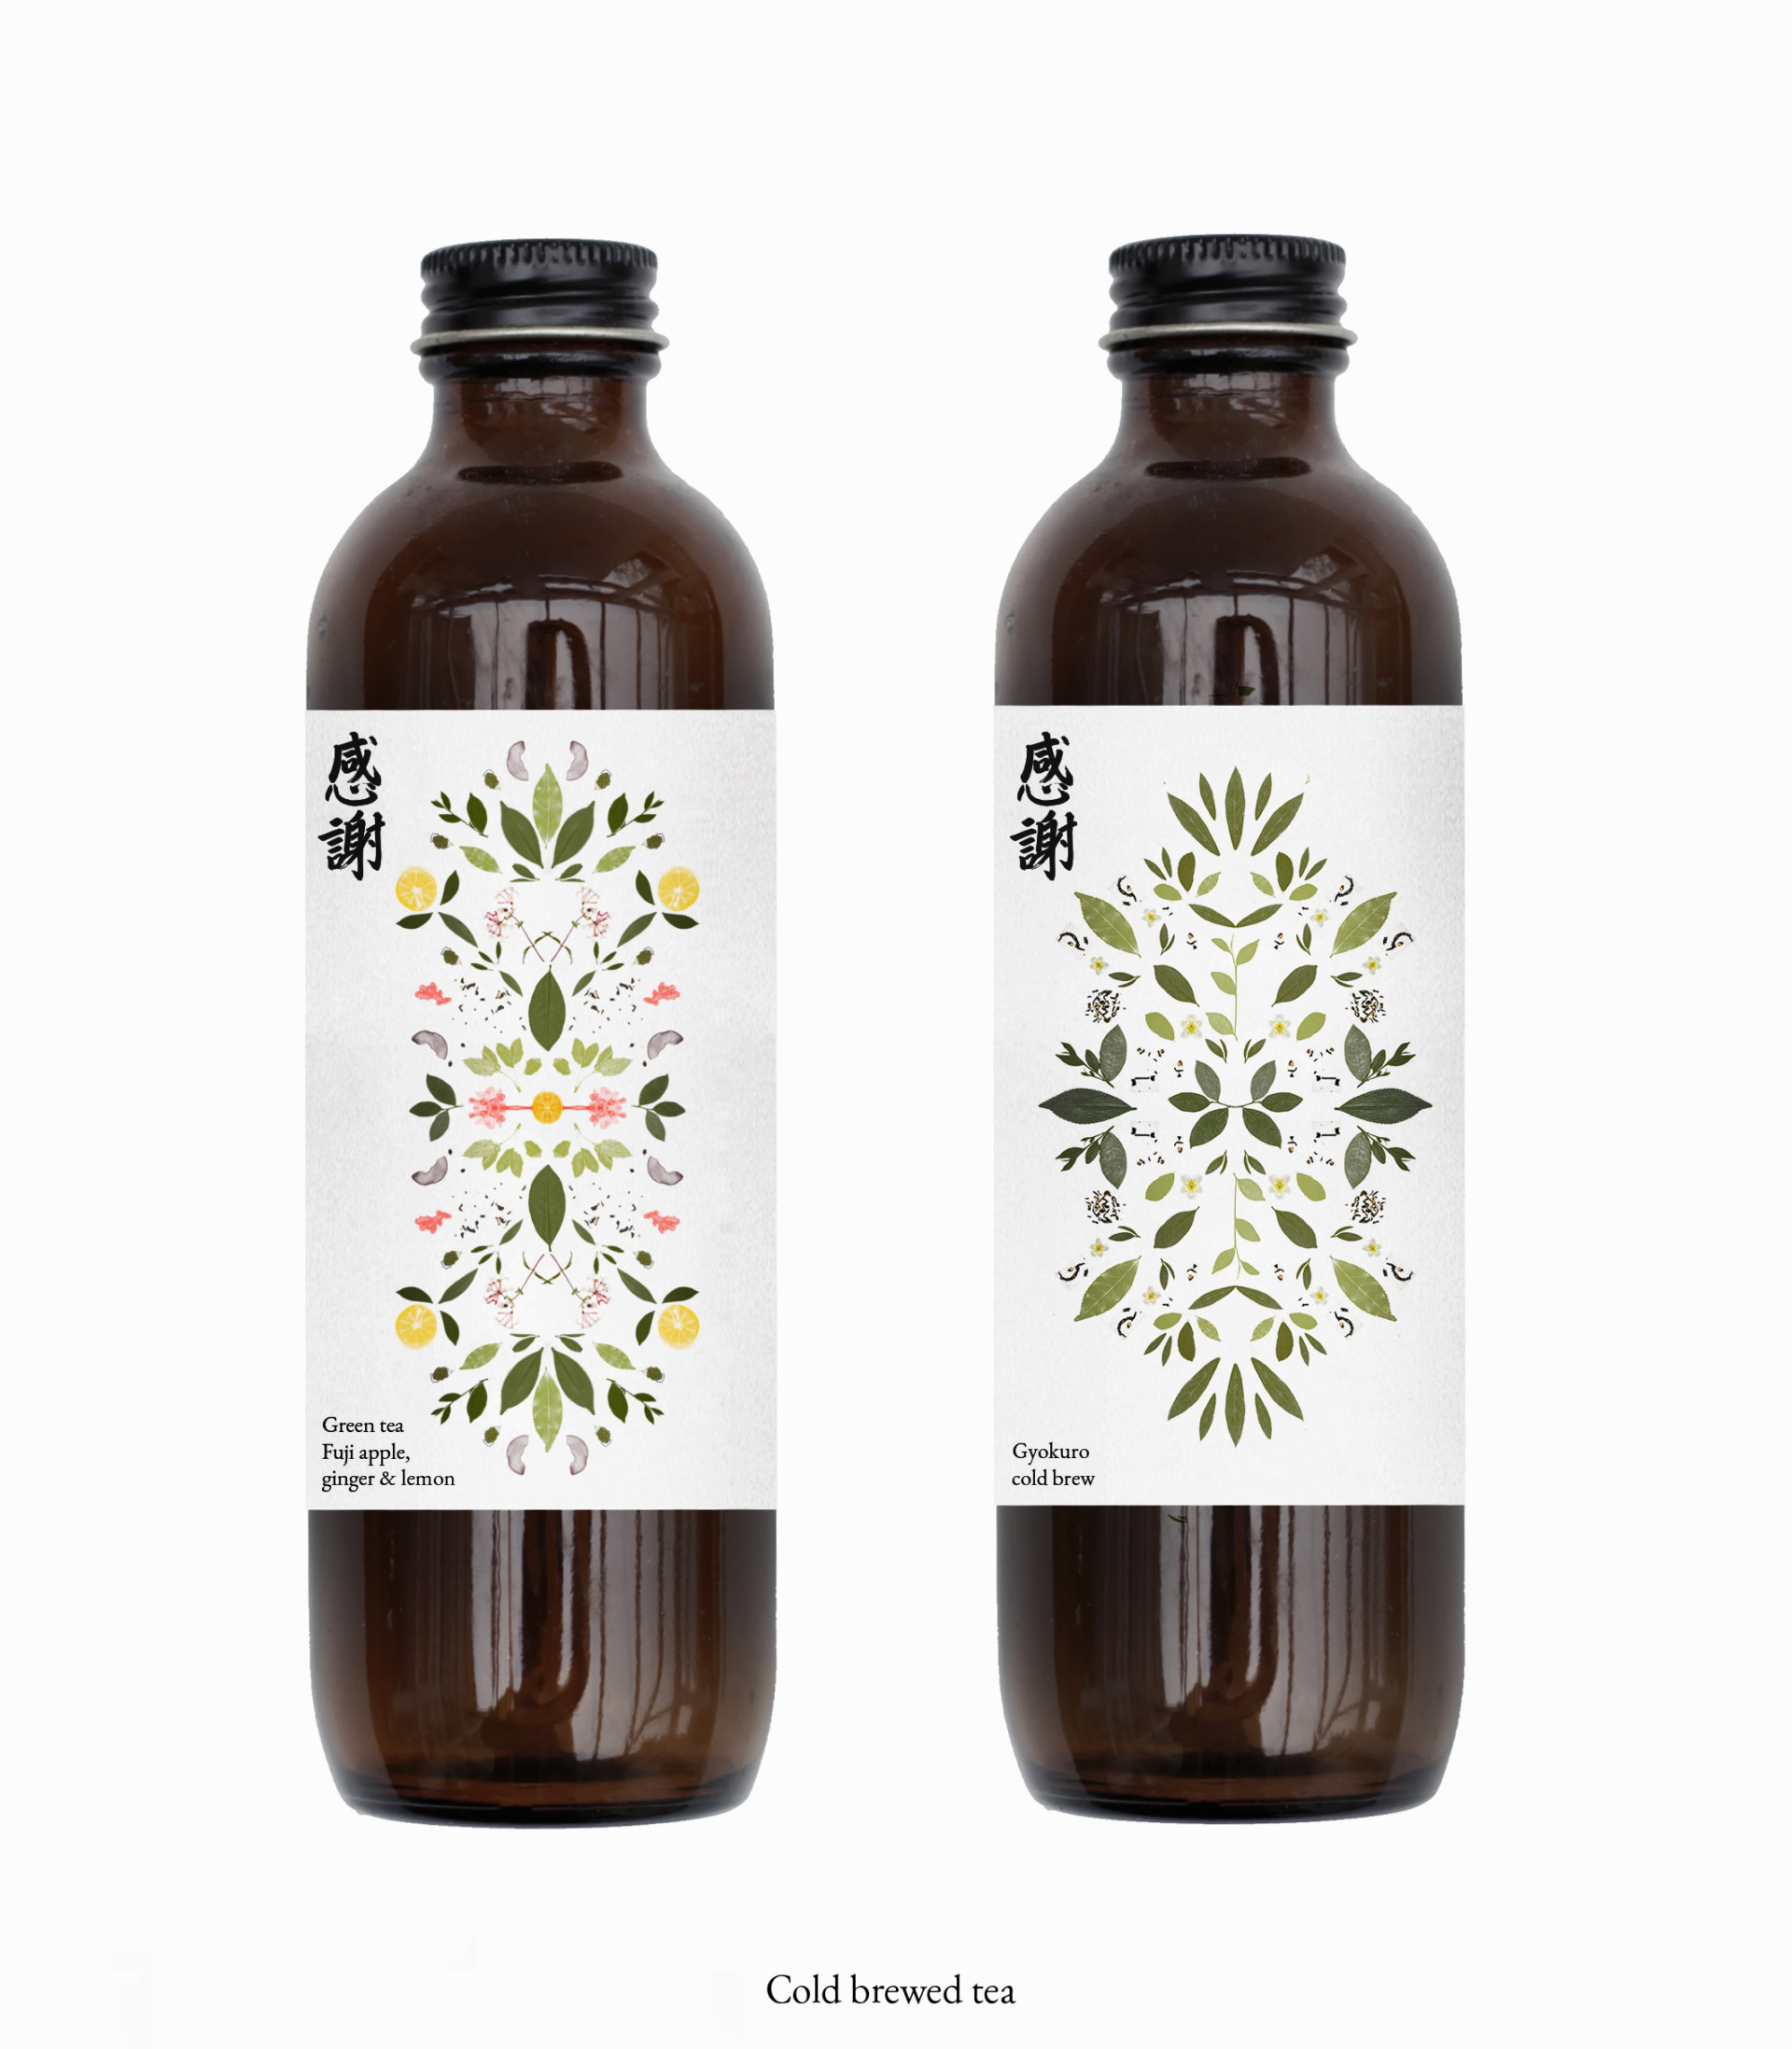 ōnō Kansha – cold brewed tea